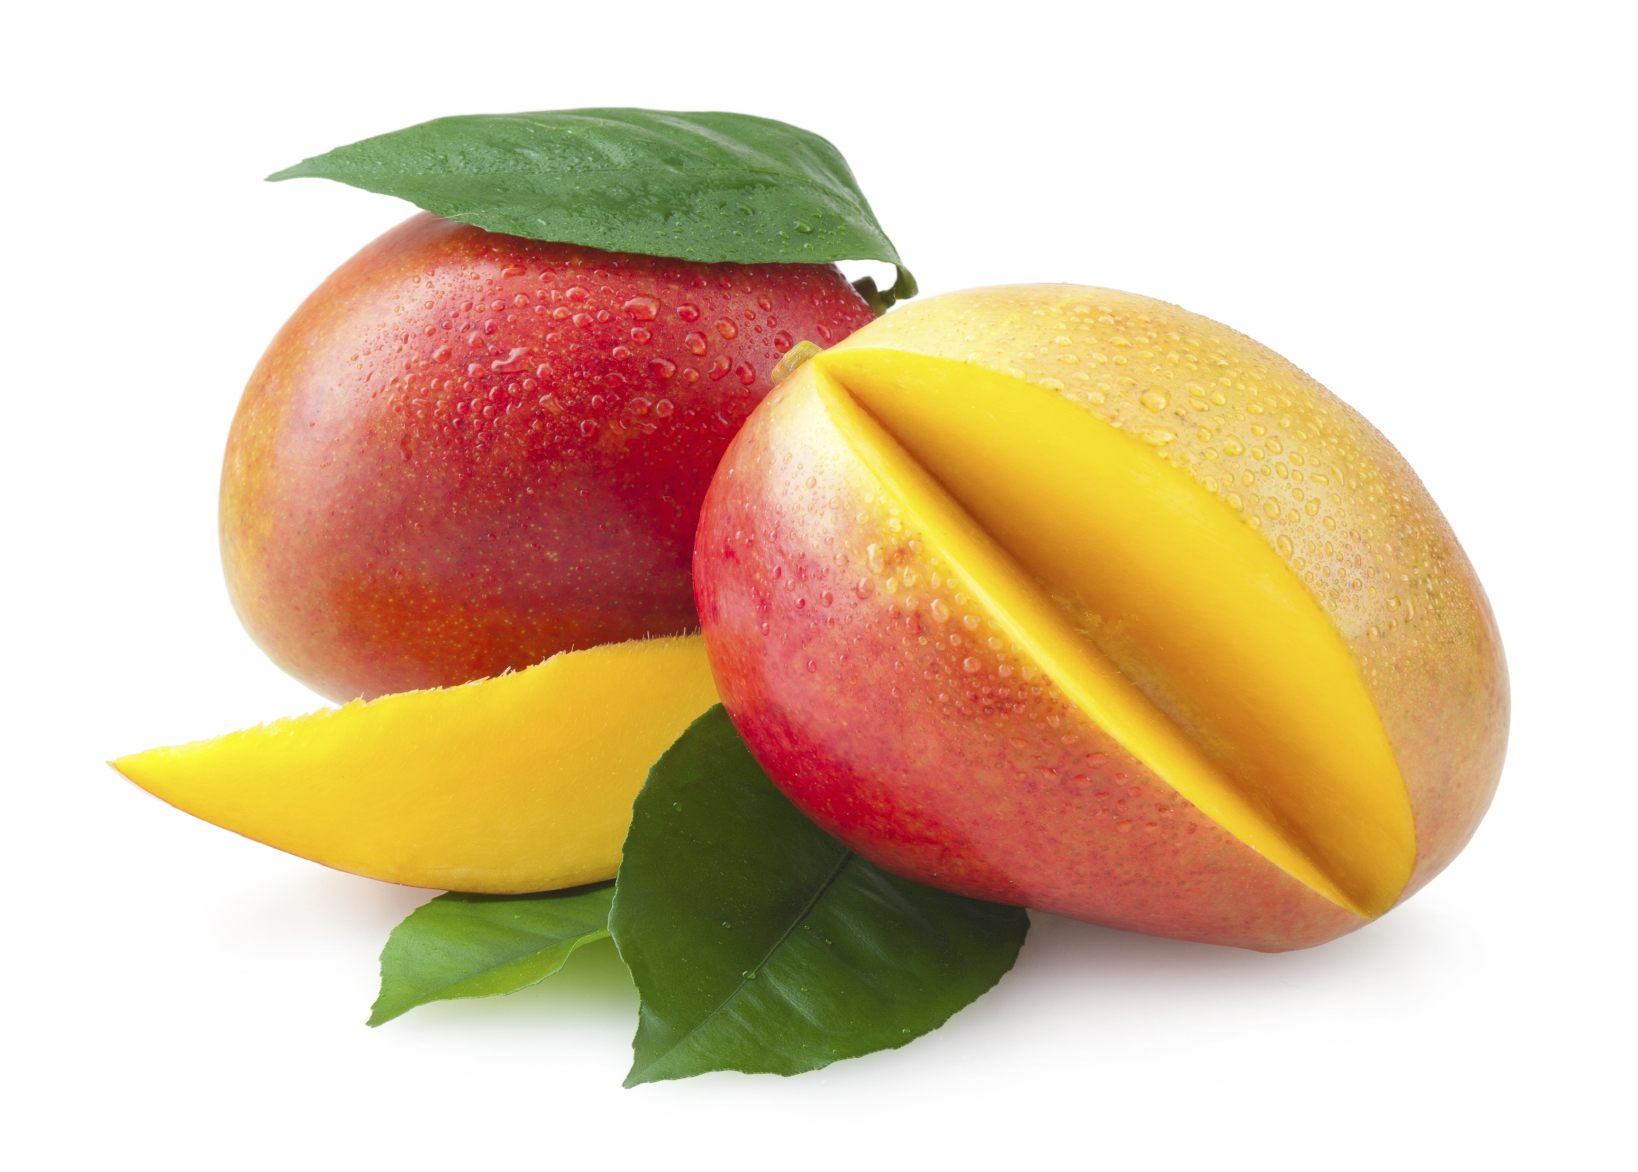 It's national mango month in the U.S. The perfect time to add them to your diet if you aren't already. Here are five reasons to eat more mangoes.